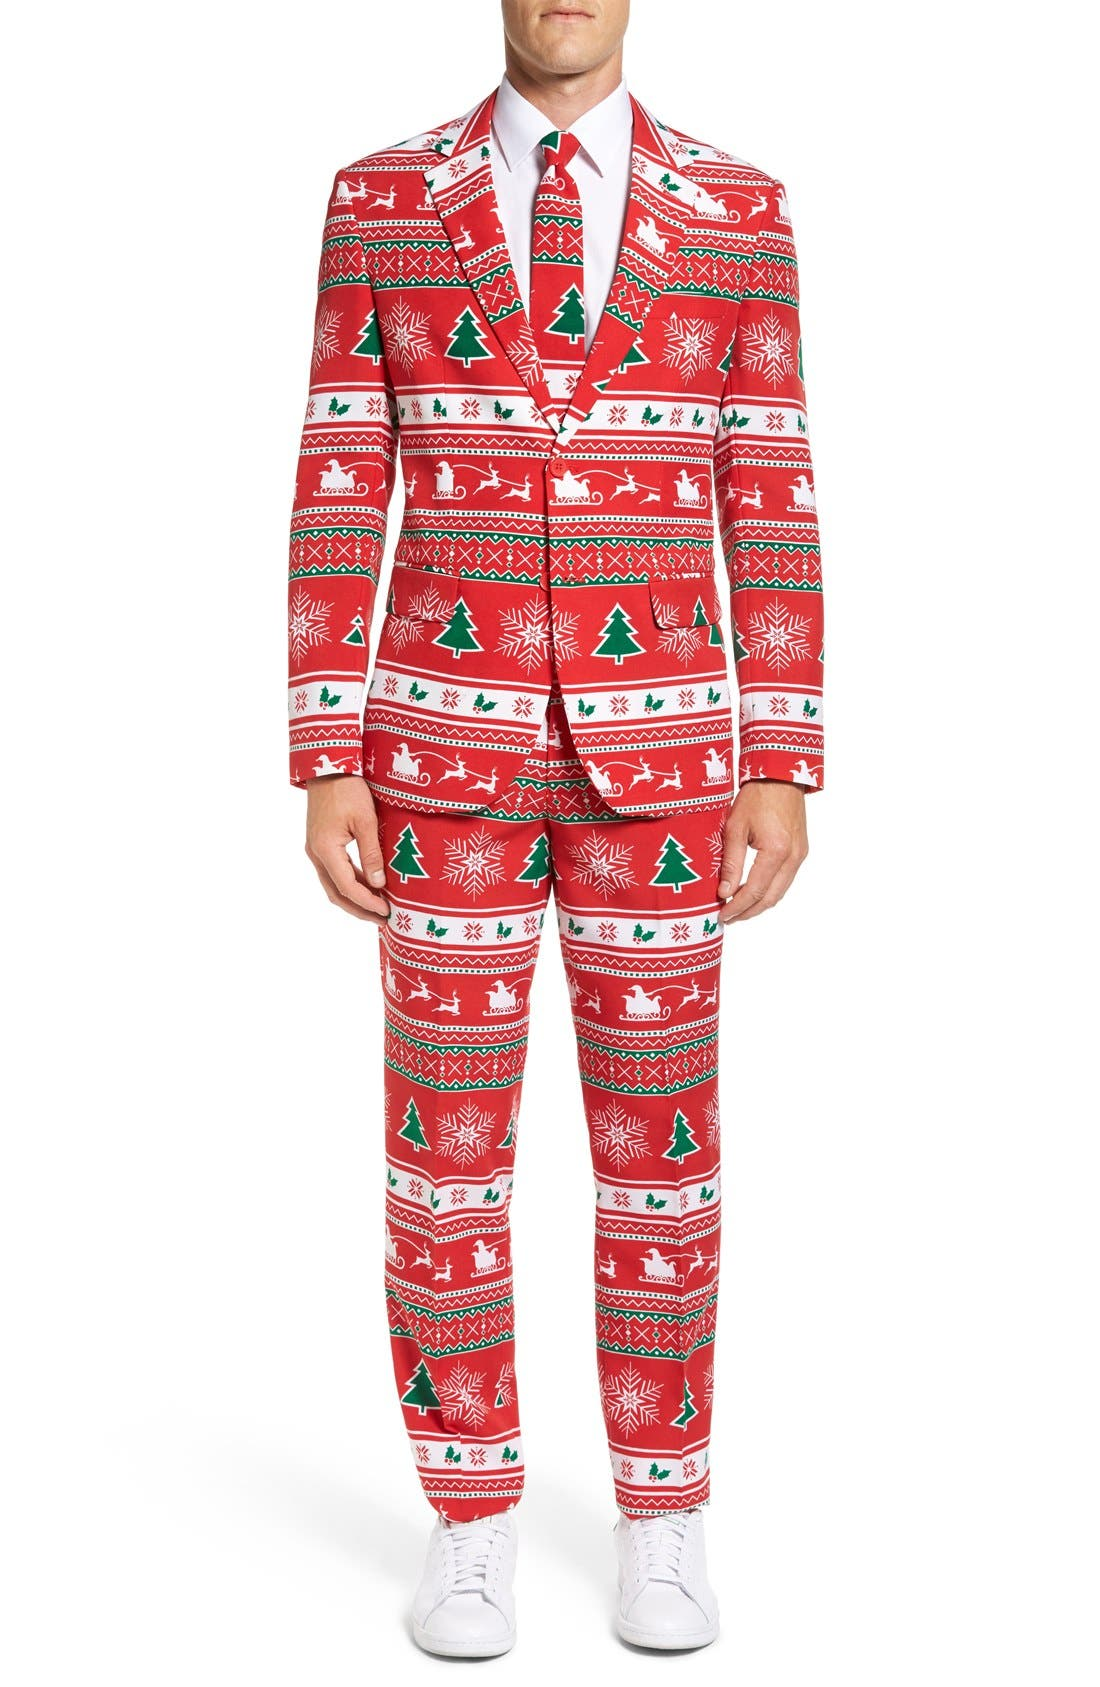 Main Image - OppoSuits 'Winter Wonderland' Trim Fit Two-Piece Suit with Tie